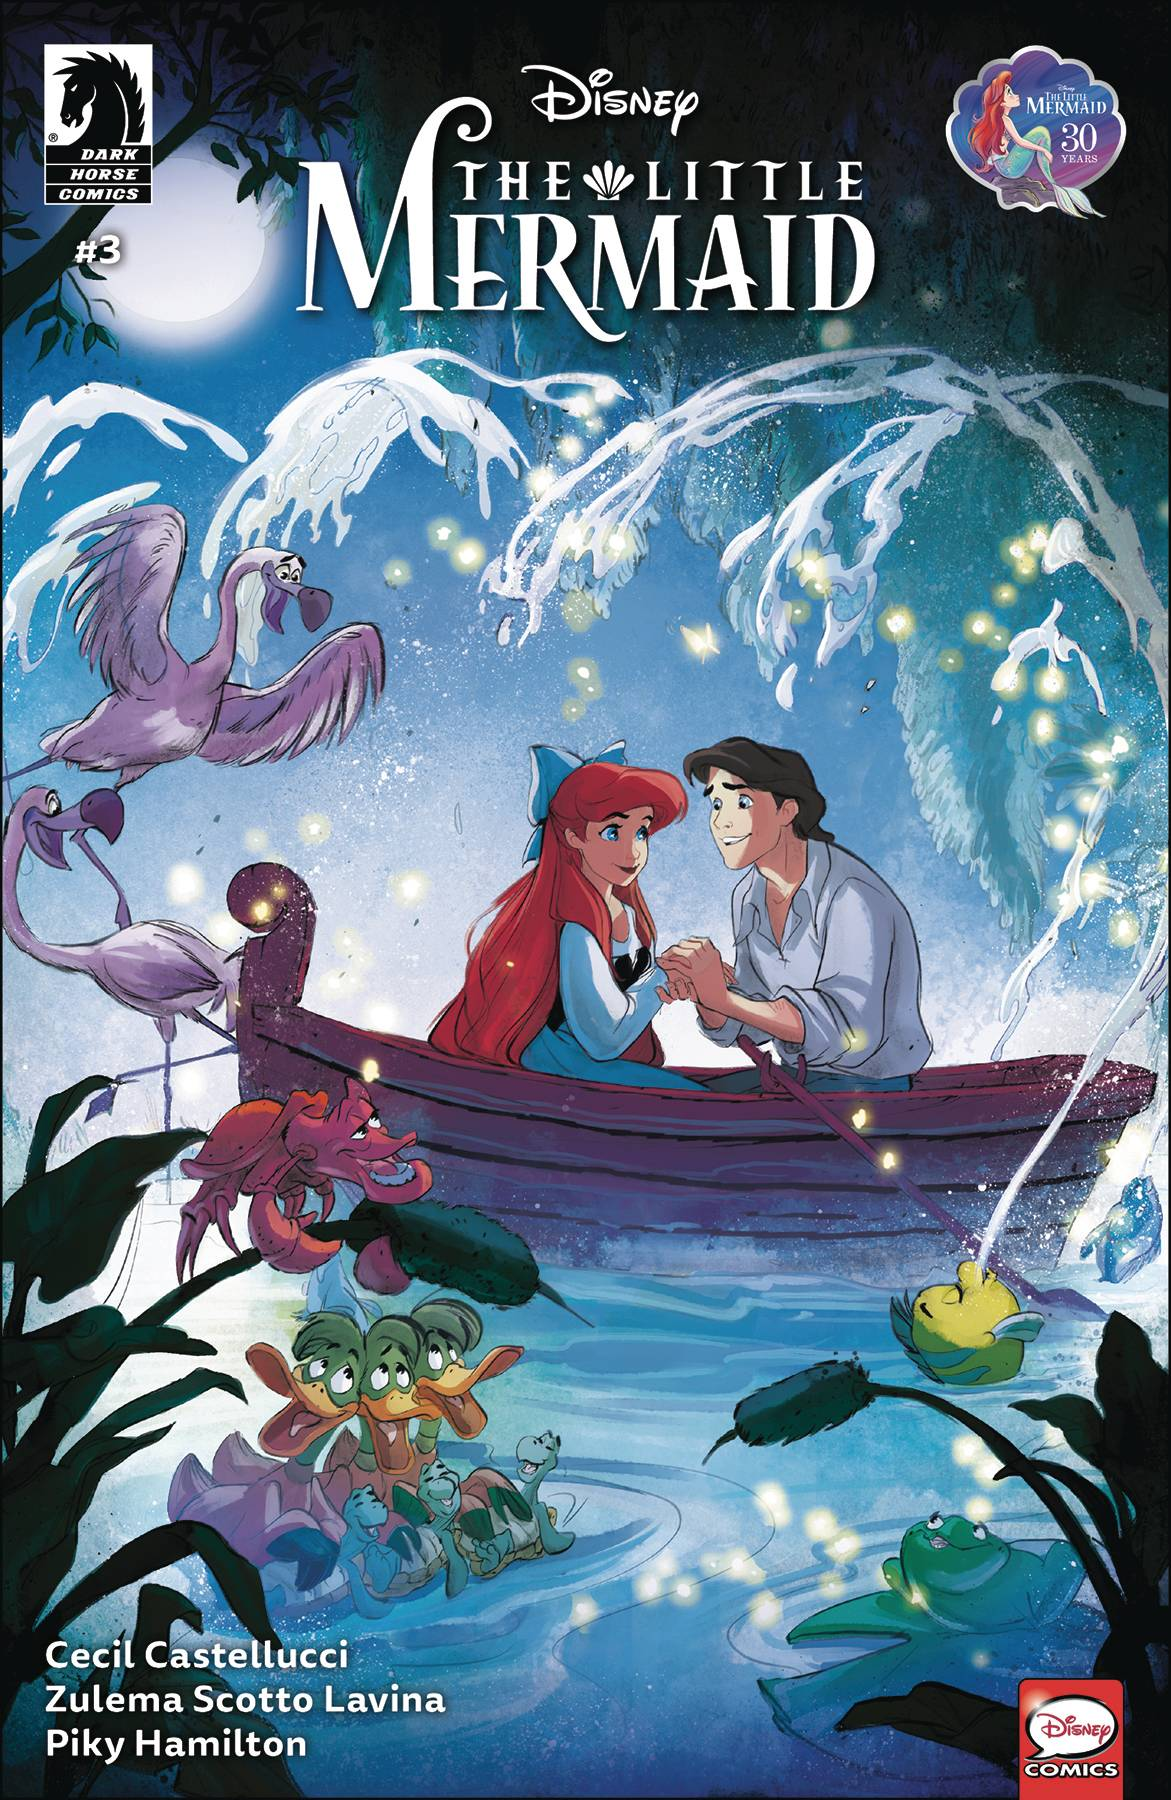 DISNEY THE LITTLE MERMAID #3 (OF 3)